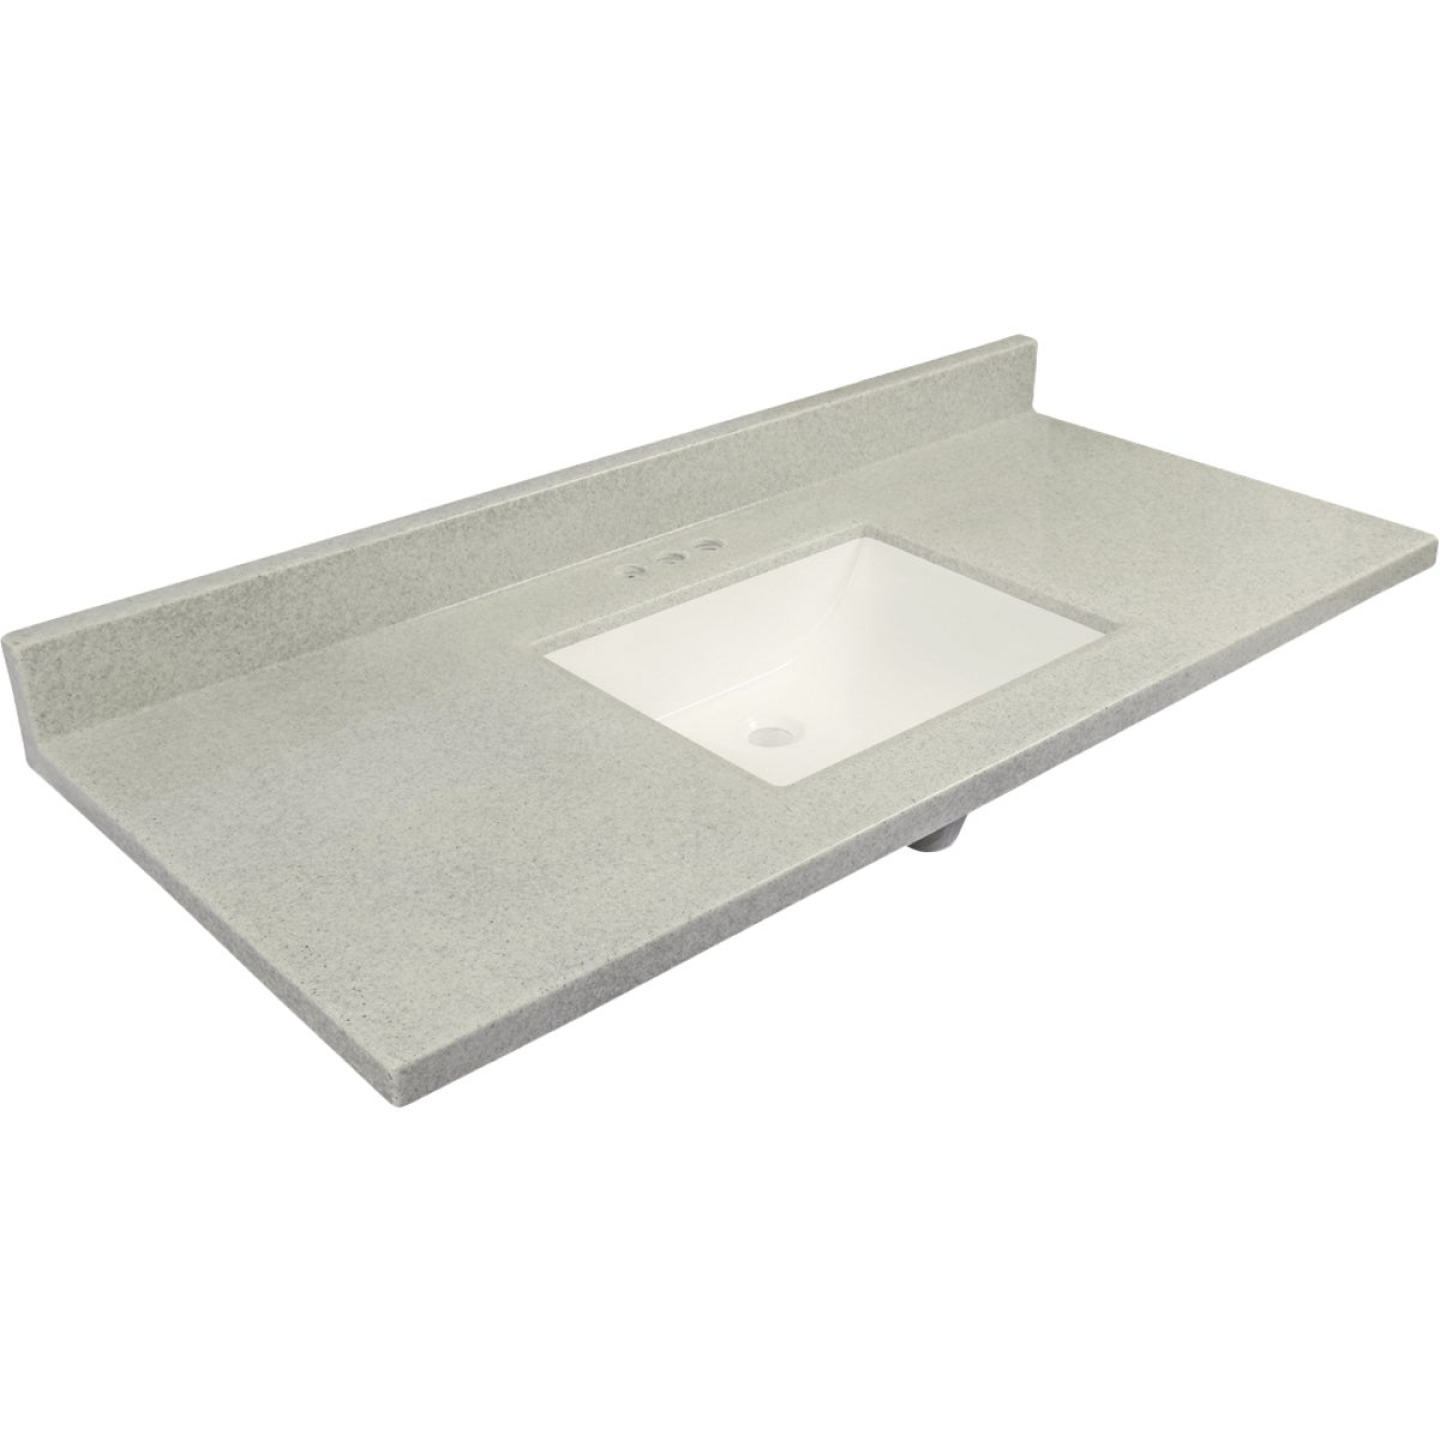 Modular Vanity Tops 49 In. W x 22 In. D Pewter Cultured Marble Vanity Top with Rectangular Wave Bowl Image 1